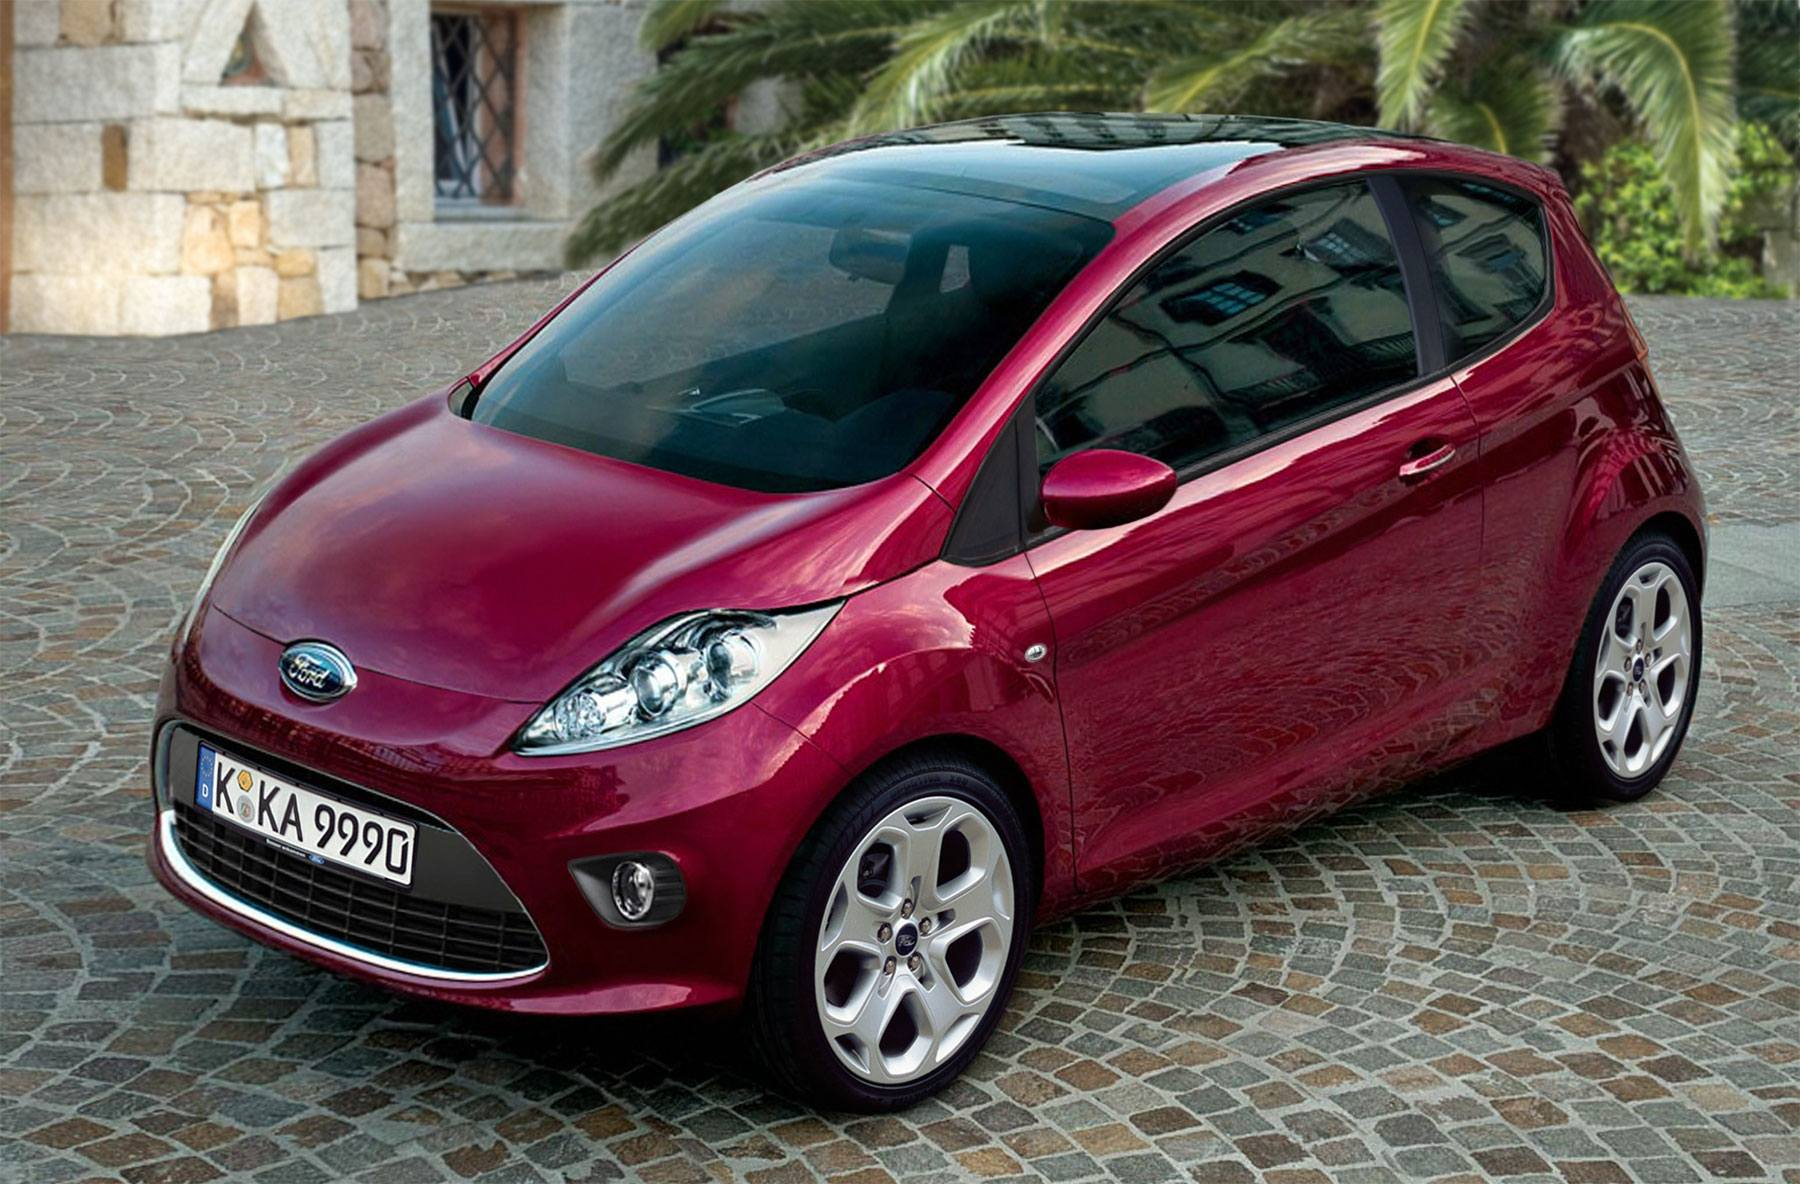 ford ka image photos news reviews specs car listings. Black Bedroom Furniture Sets. Home Design Ideas